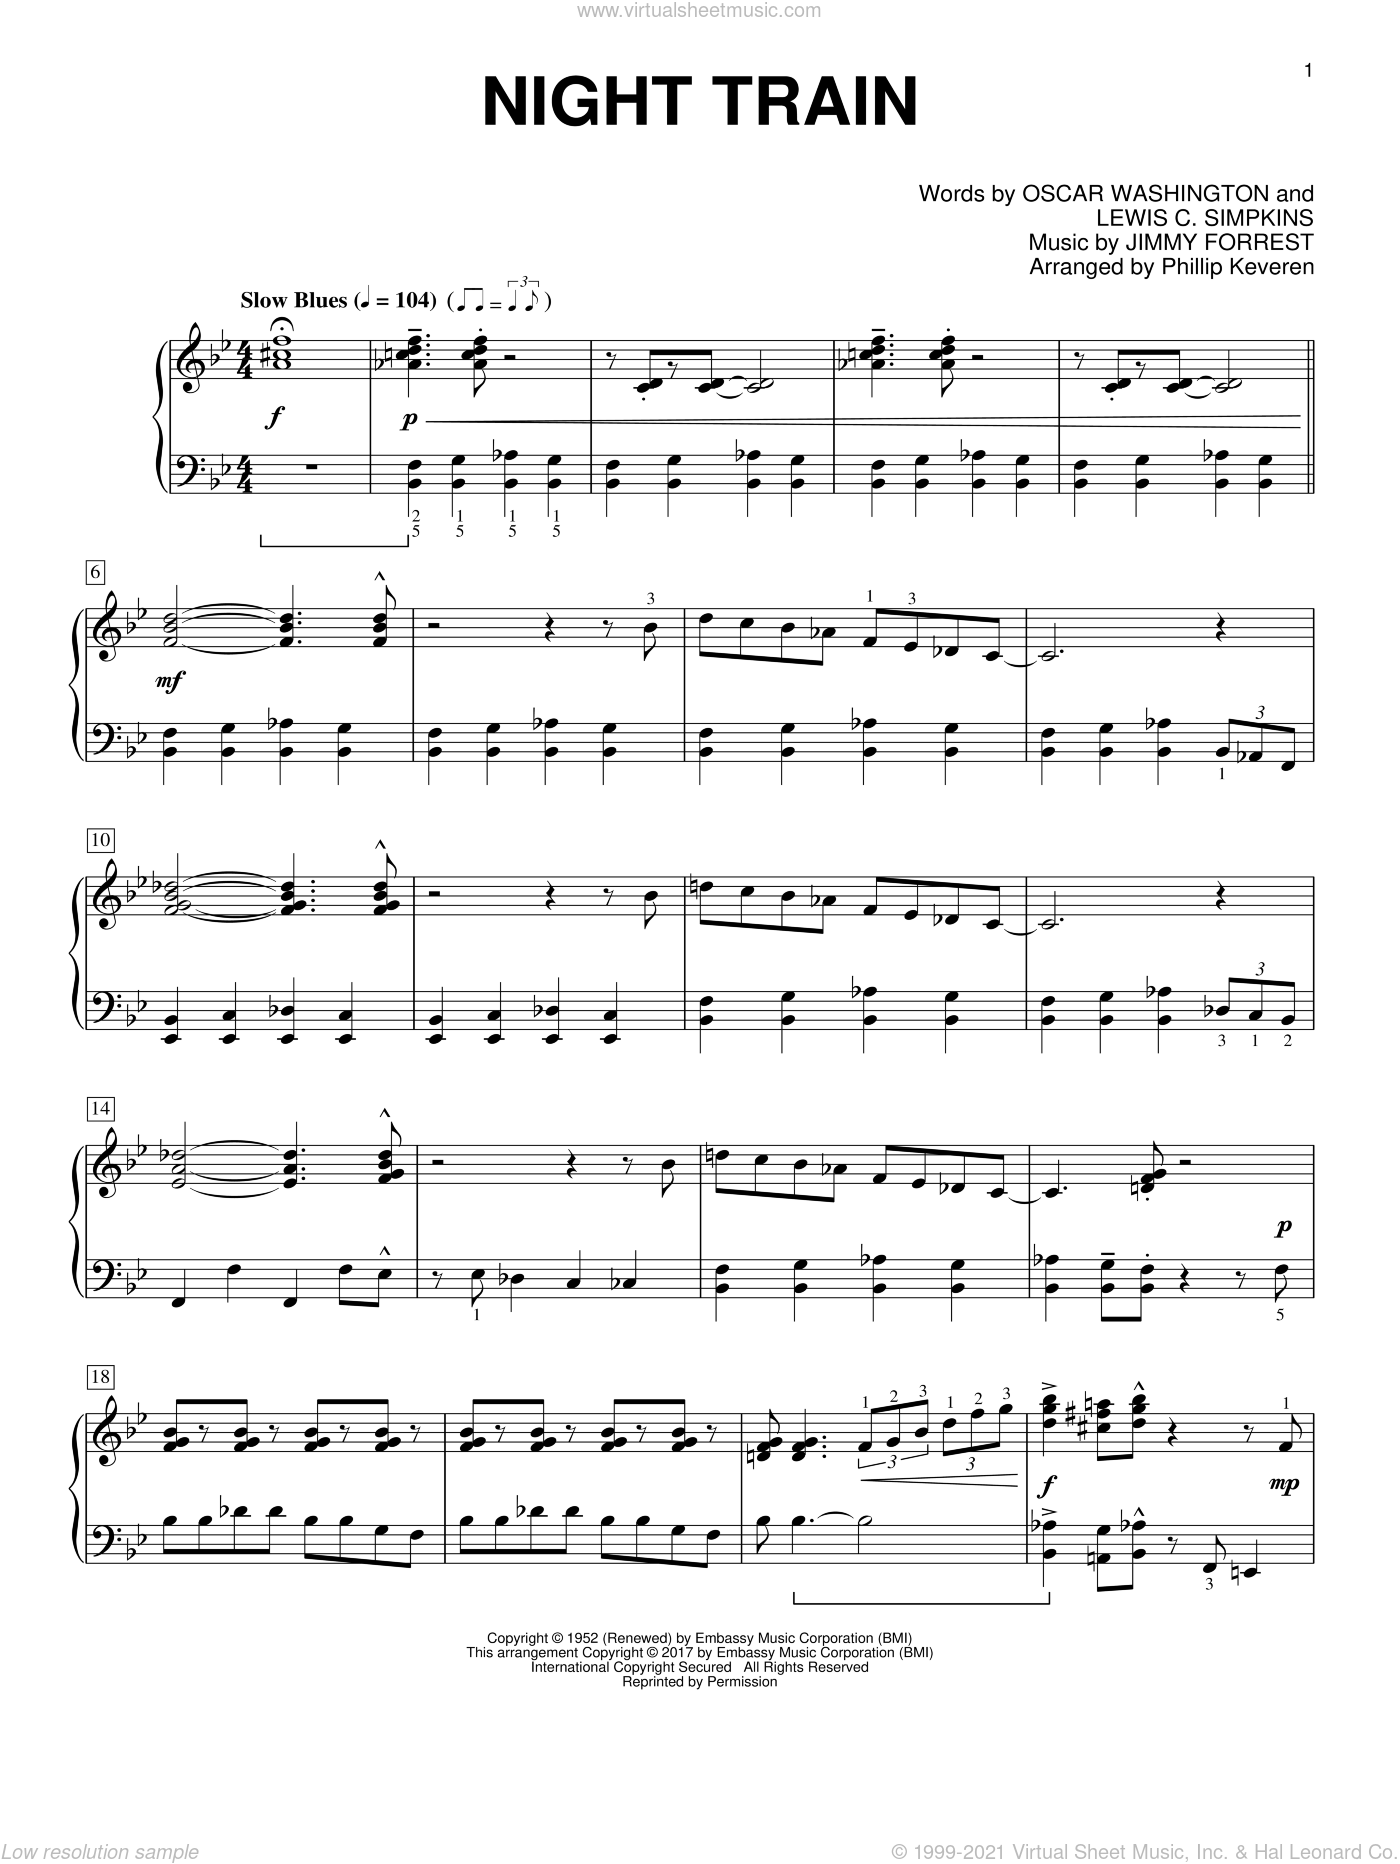 Night Train sheet music for piano solo by Jimmy Forrest, Phillip Keveren, Buddy Morrlow, Lewis C. Simpkins and Oscar Washington, intermediate skill level